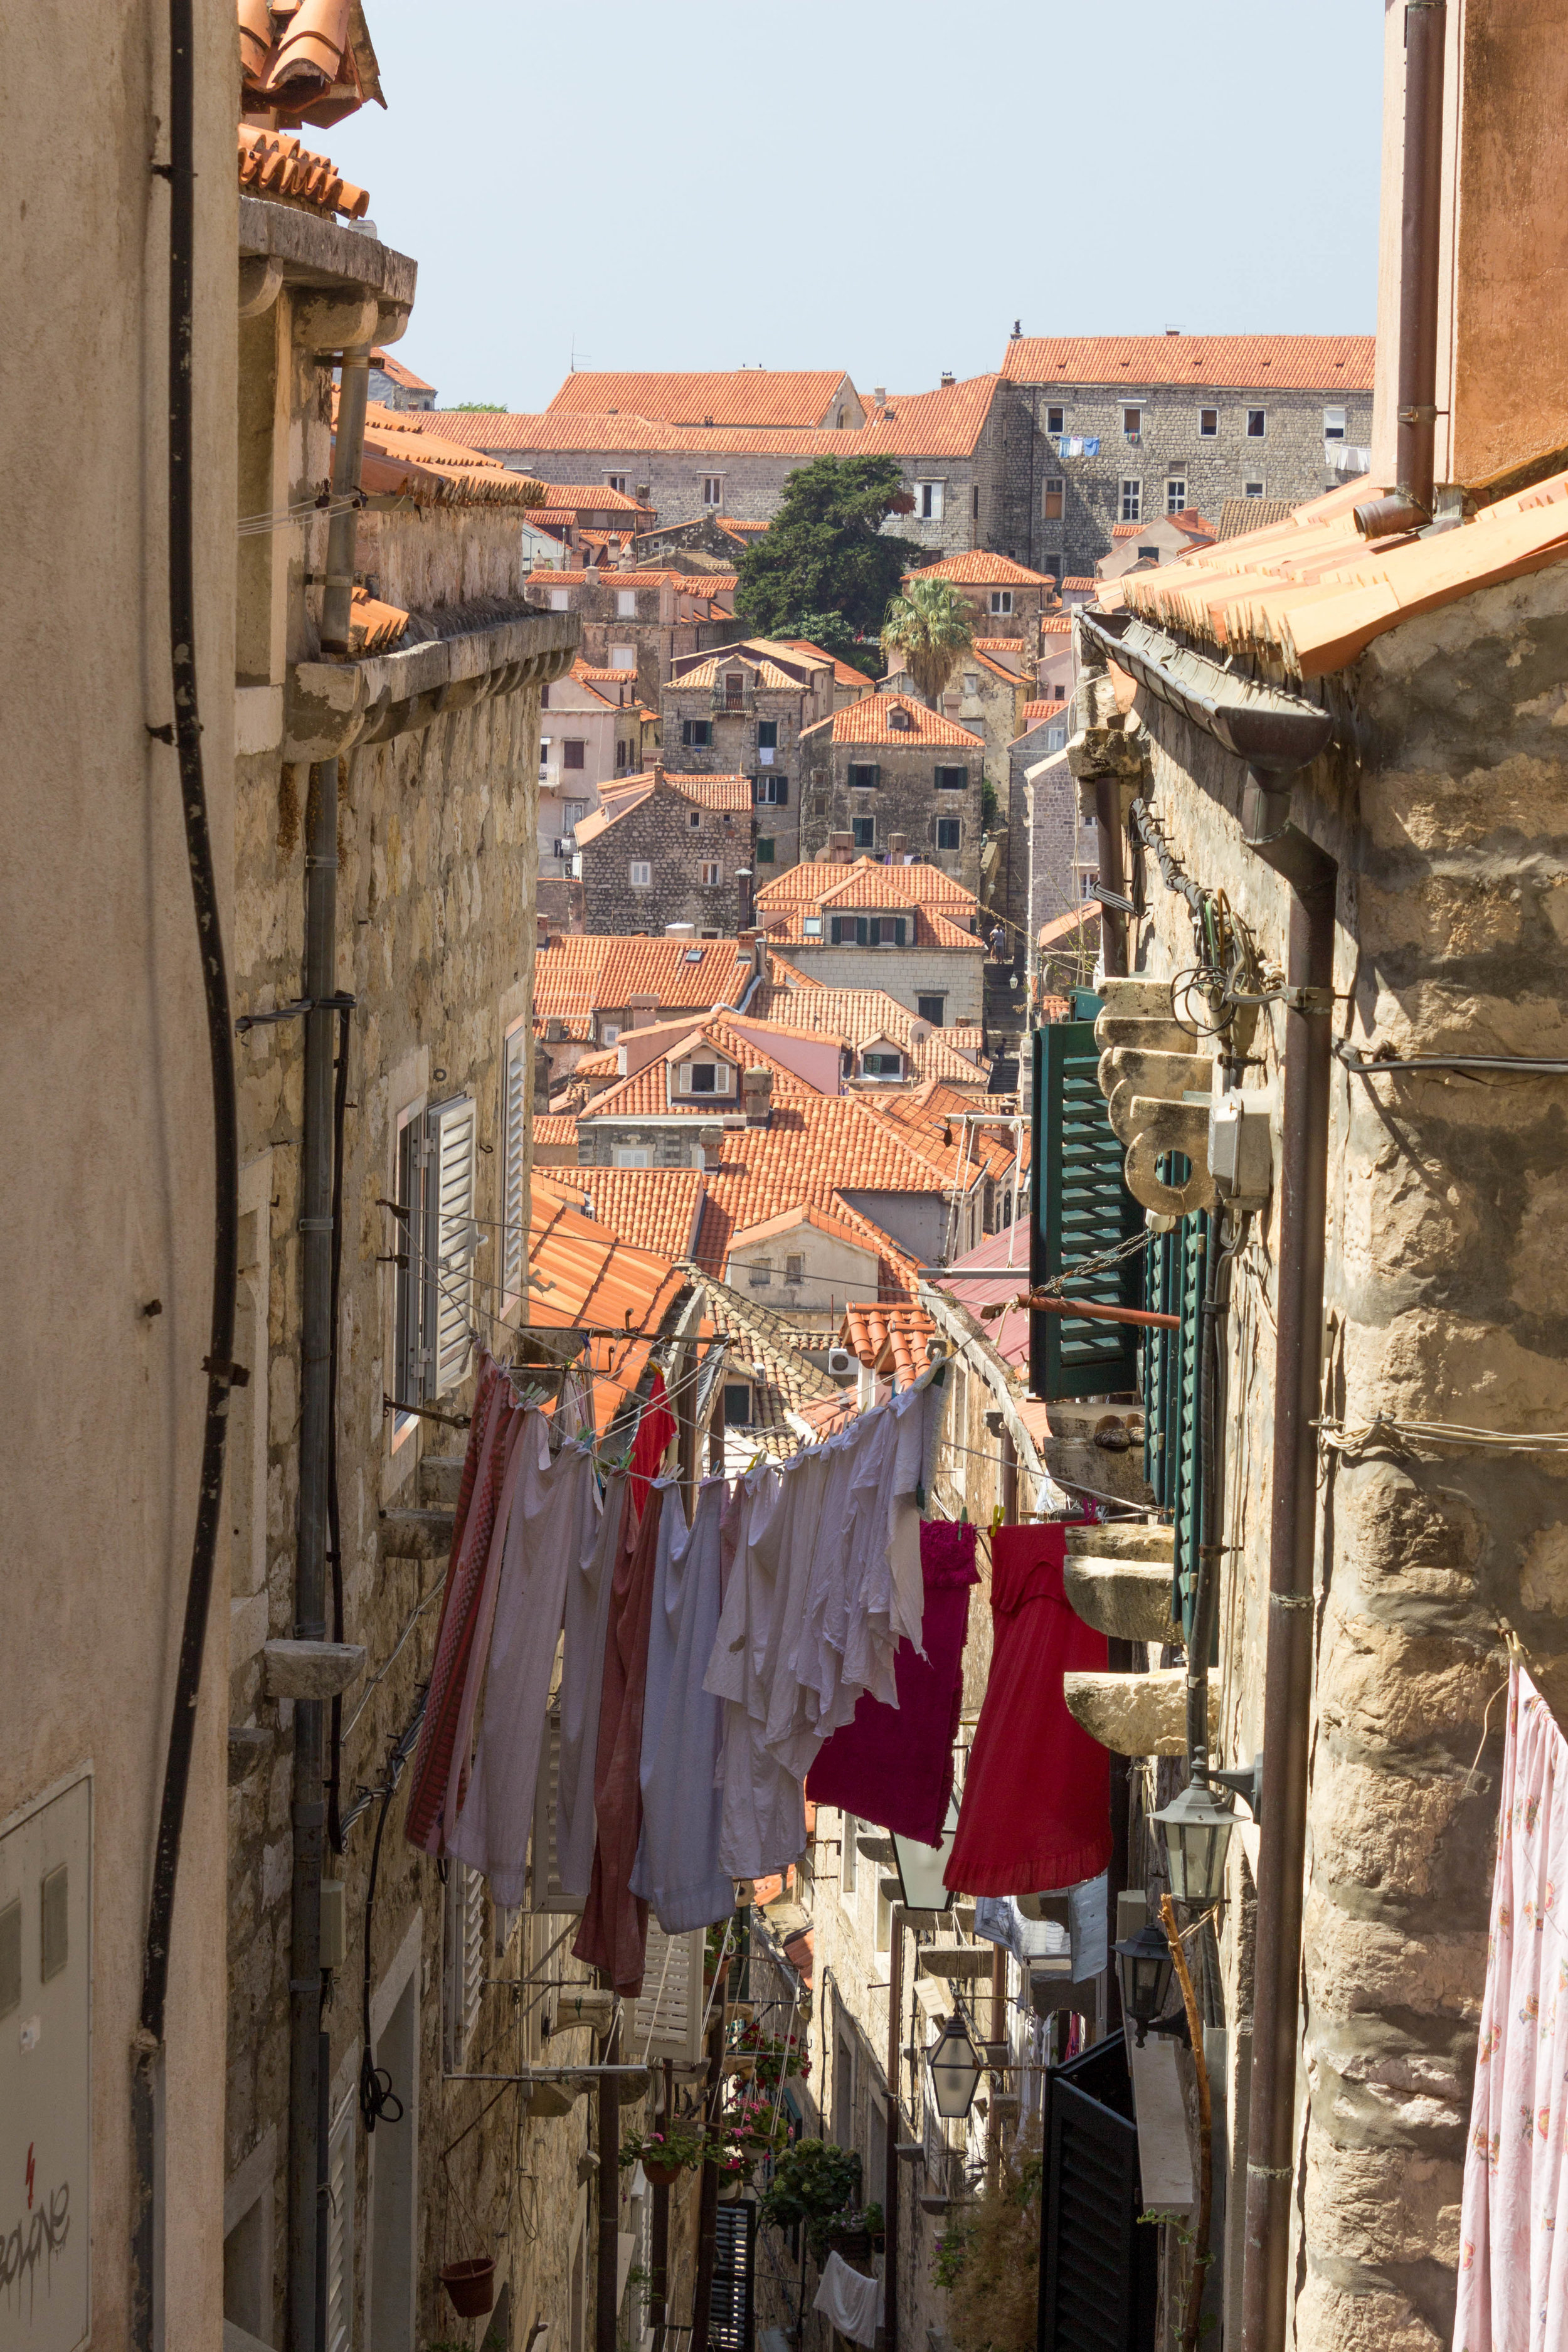 The streets of Dubrovnik